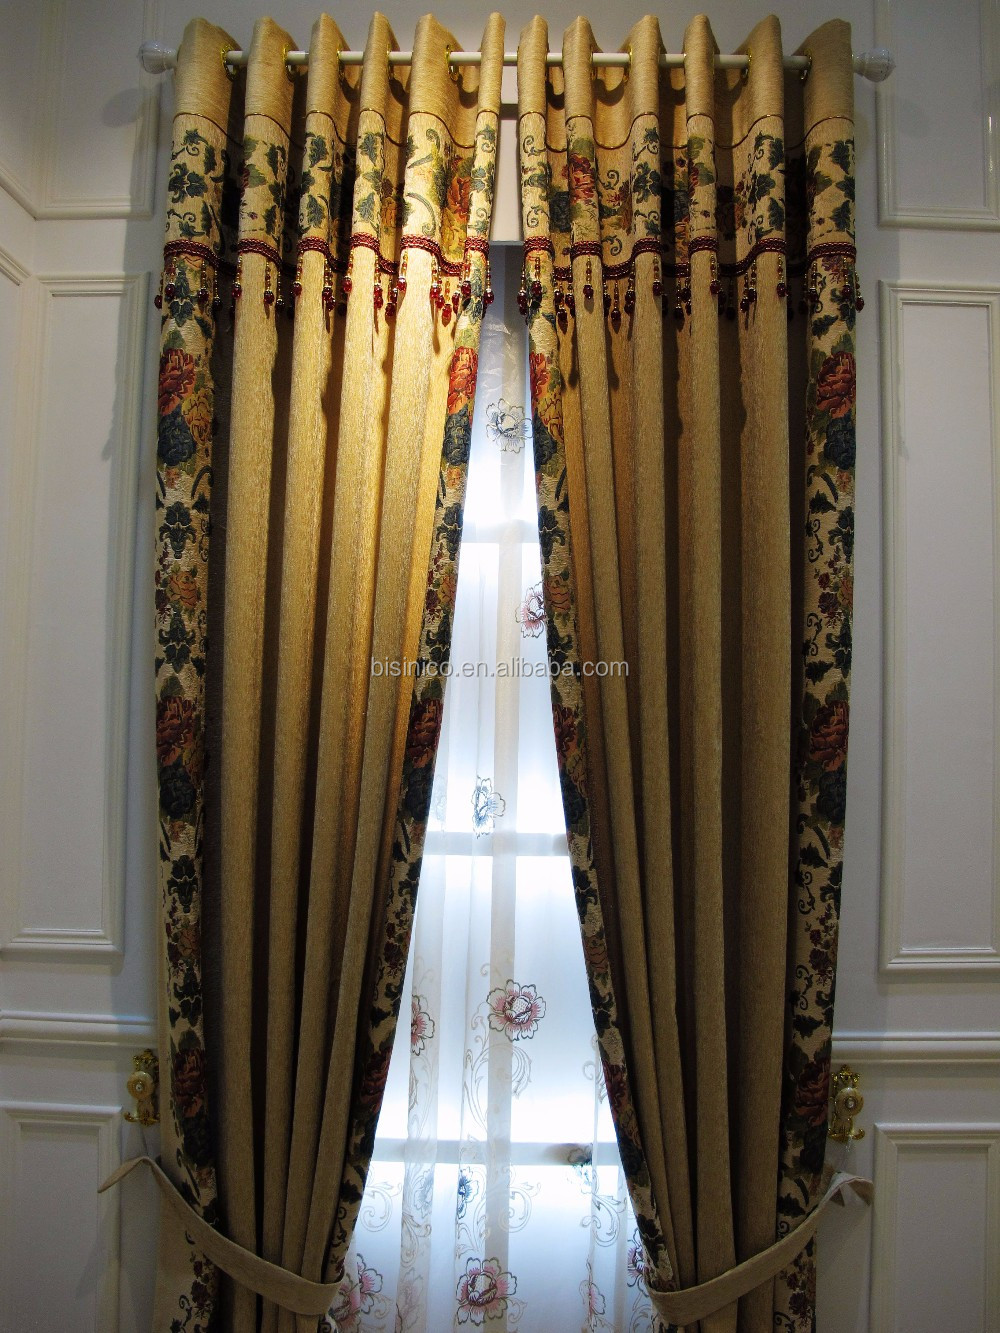 European Style Living Room Colourful Curtains Luxury Embroidery Elegant Beaded Curtains With Valance Buy Colourful Curtain Decor Home Elegant